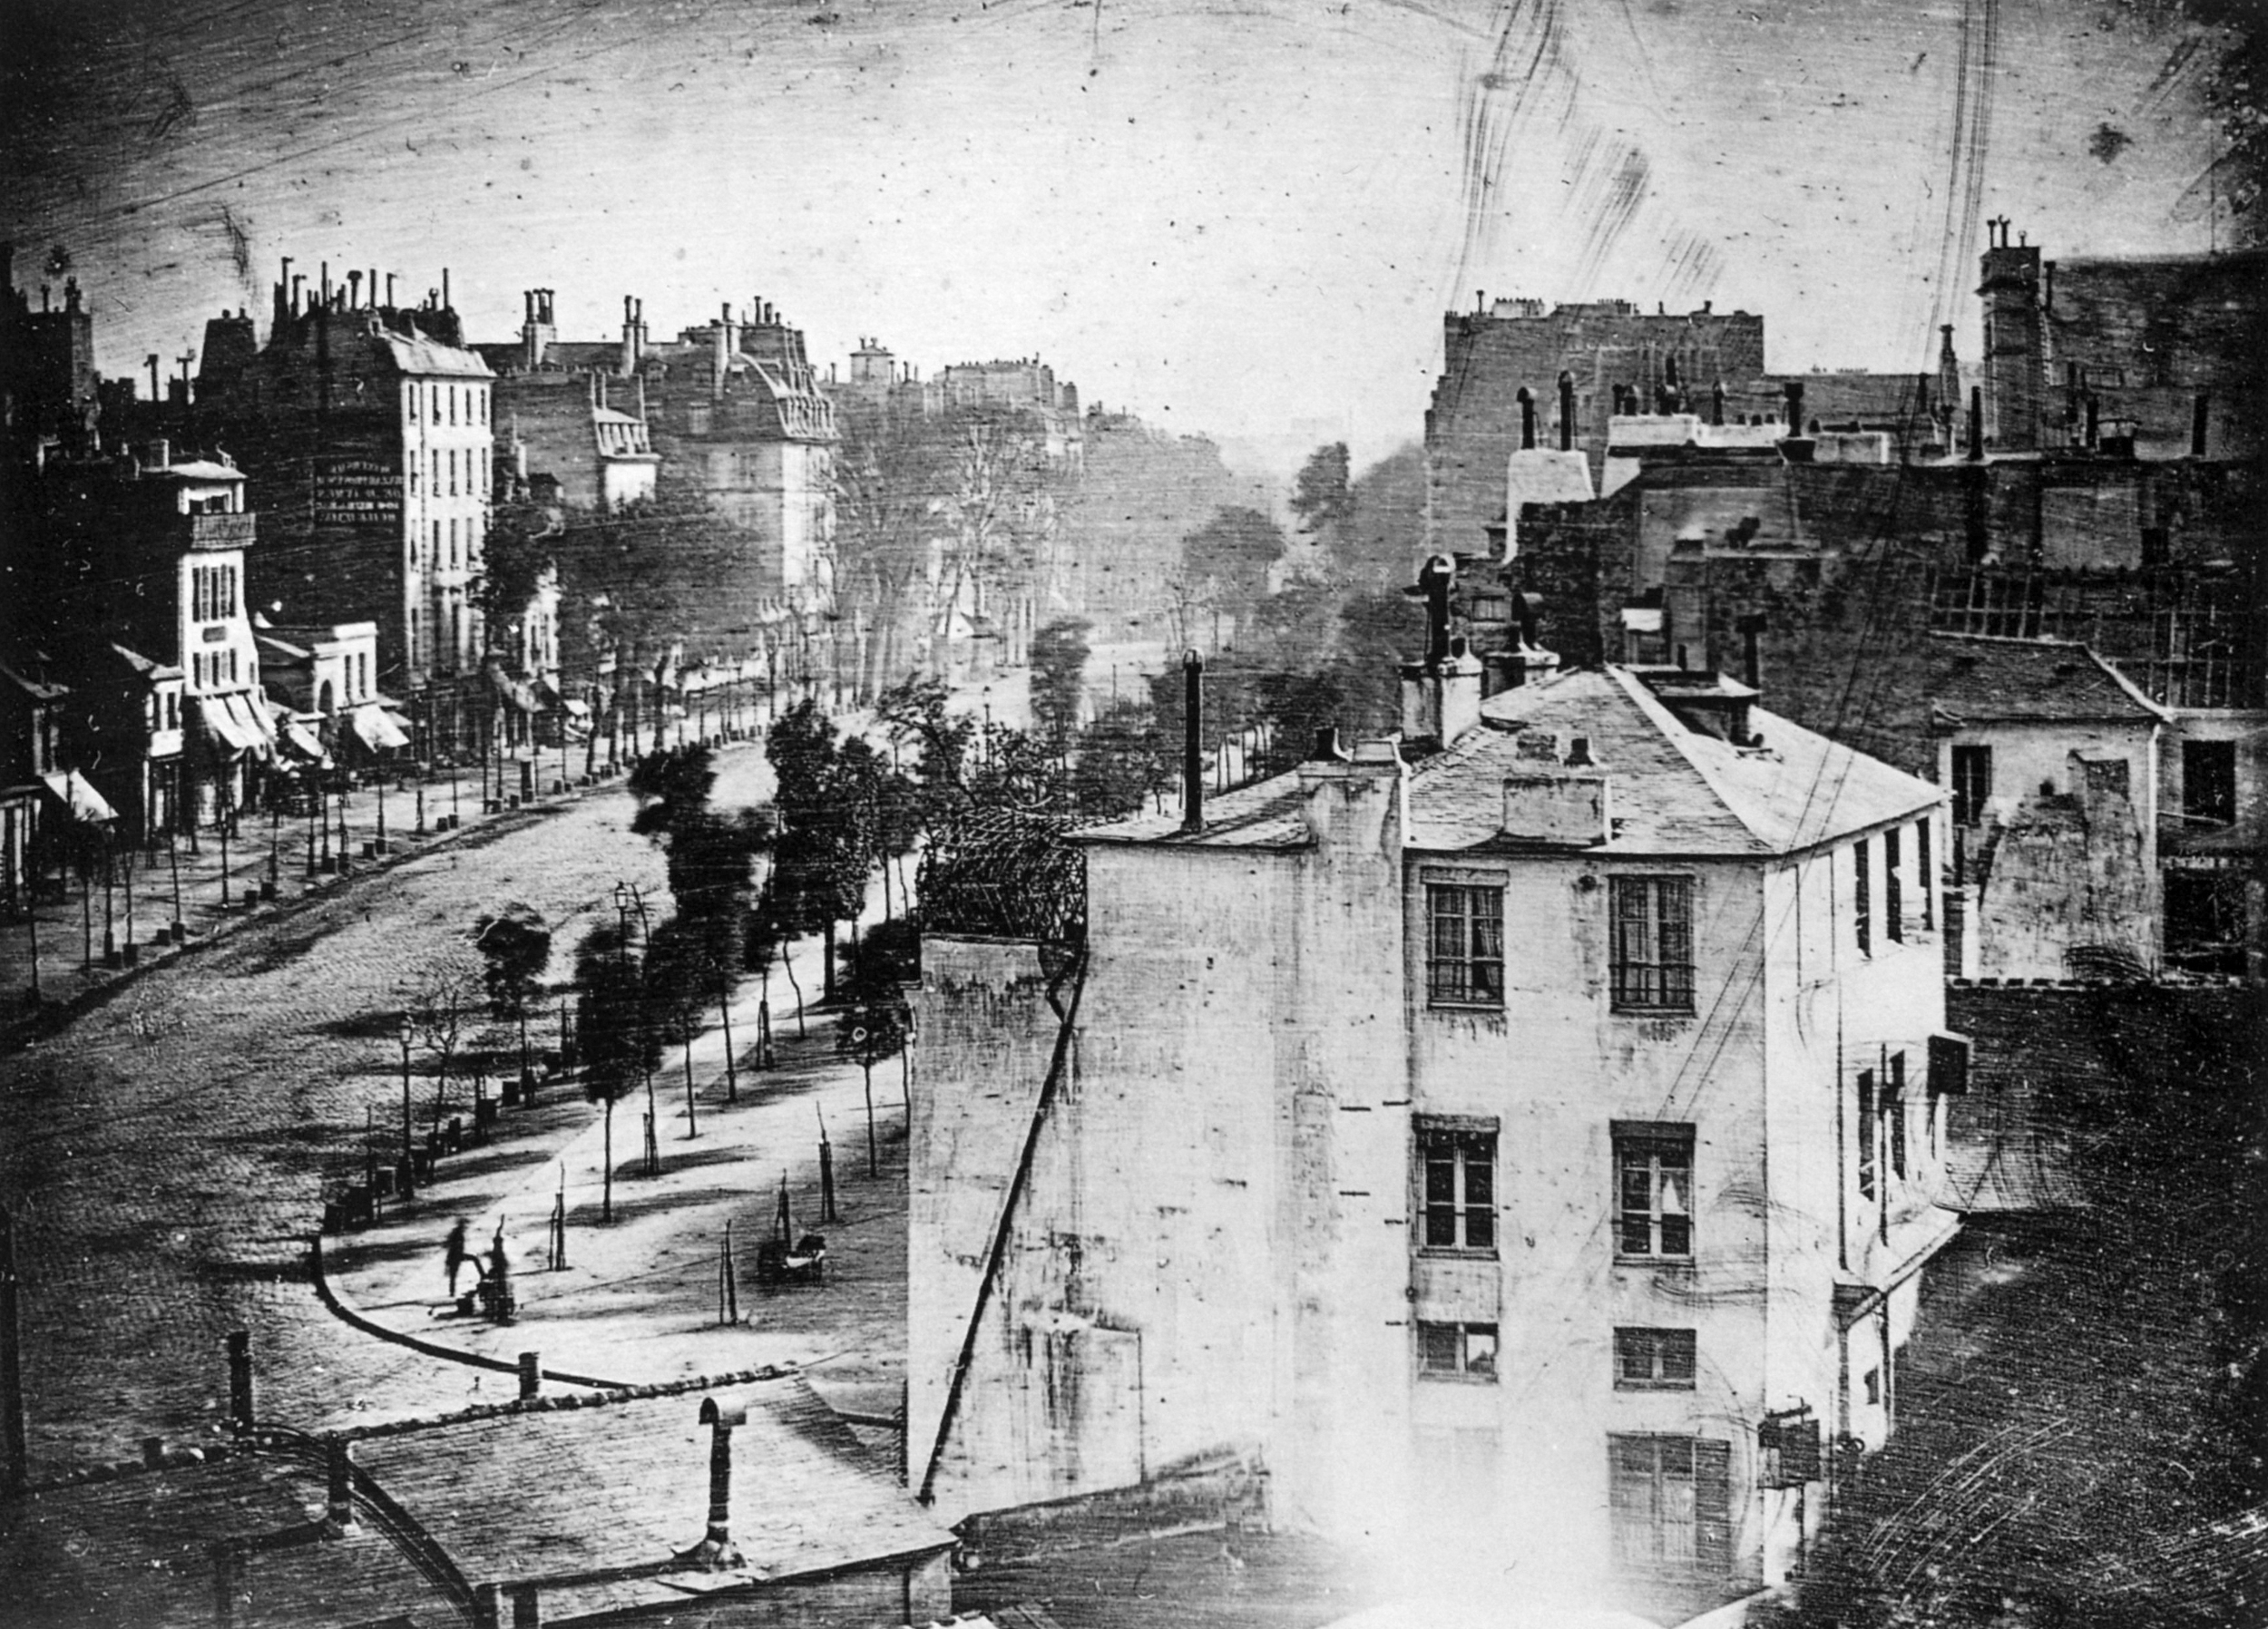 """Boulevard du Temple"", 1838, Louis Daguerre.   Scanned from The Photography Book, Phaidon Press, London, 1997."